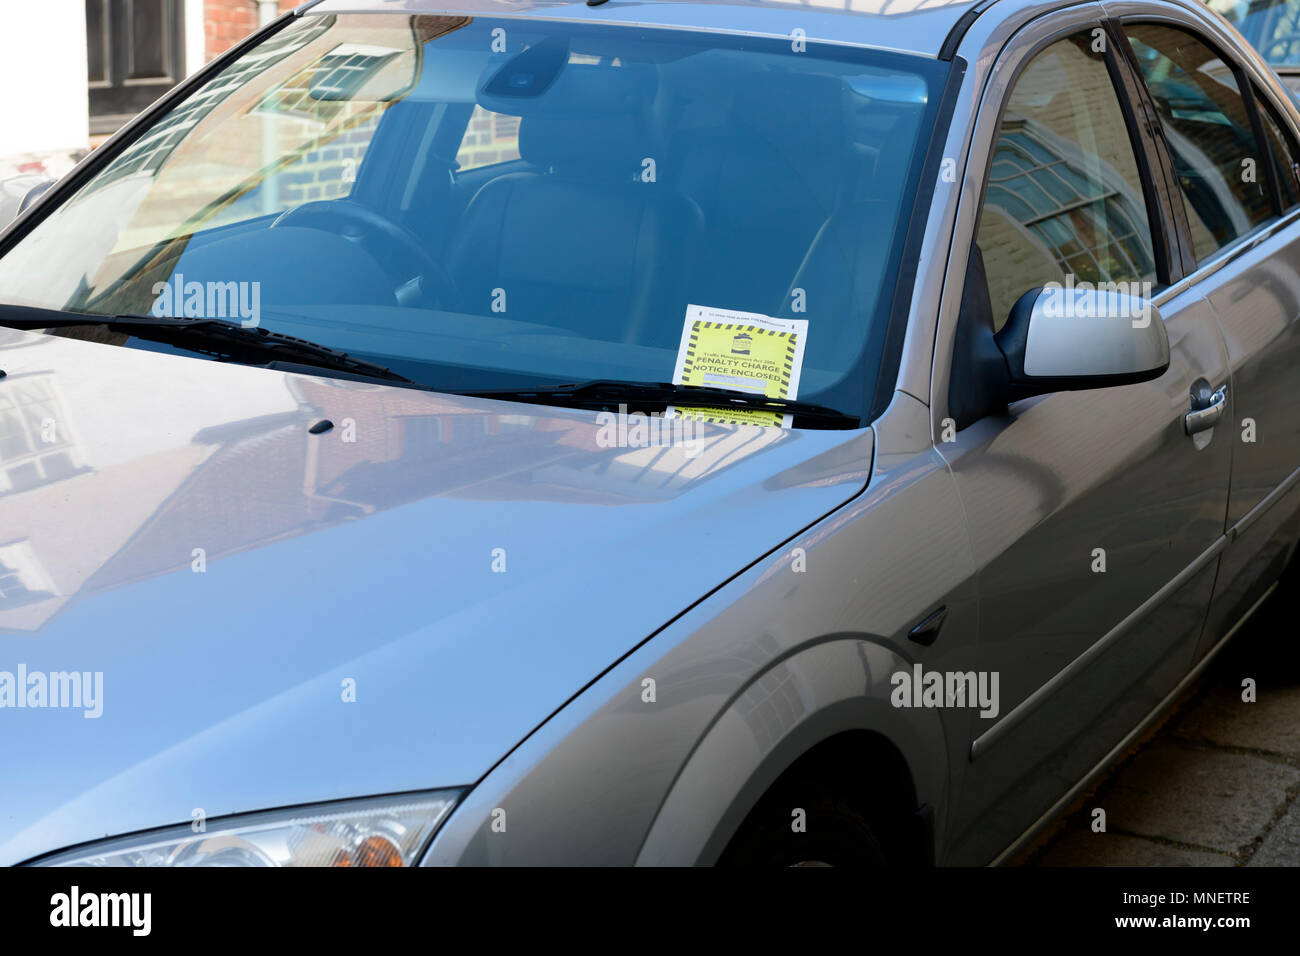 Parking penalty charge notice under car windshield wipers - Stock Image